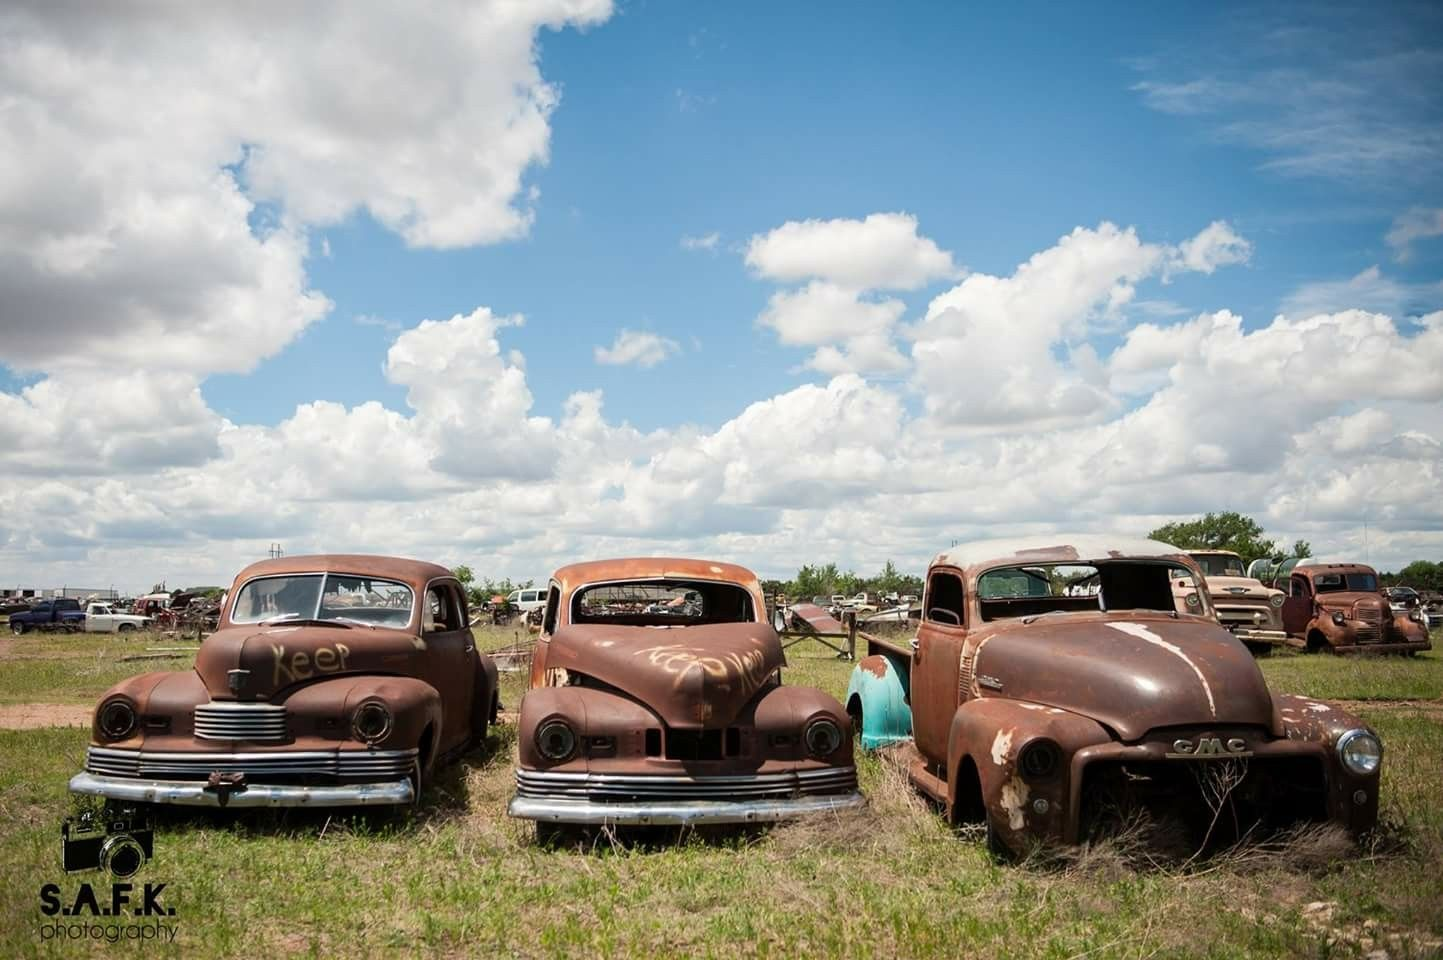 Pin by Daniel White on Car (With images) Junkyard